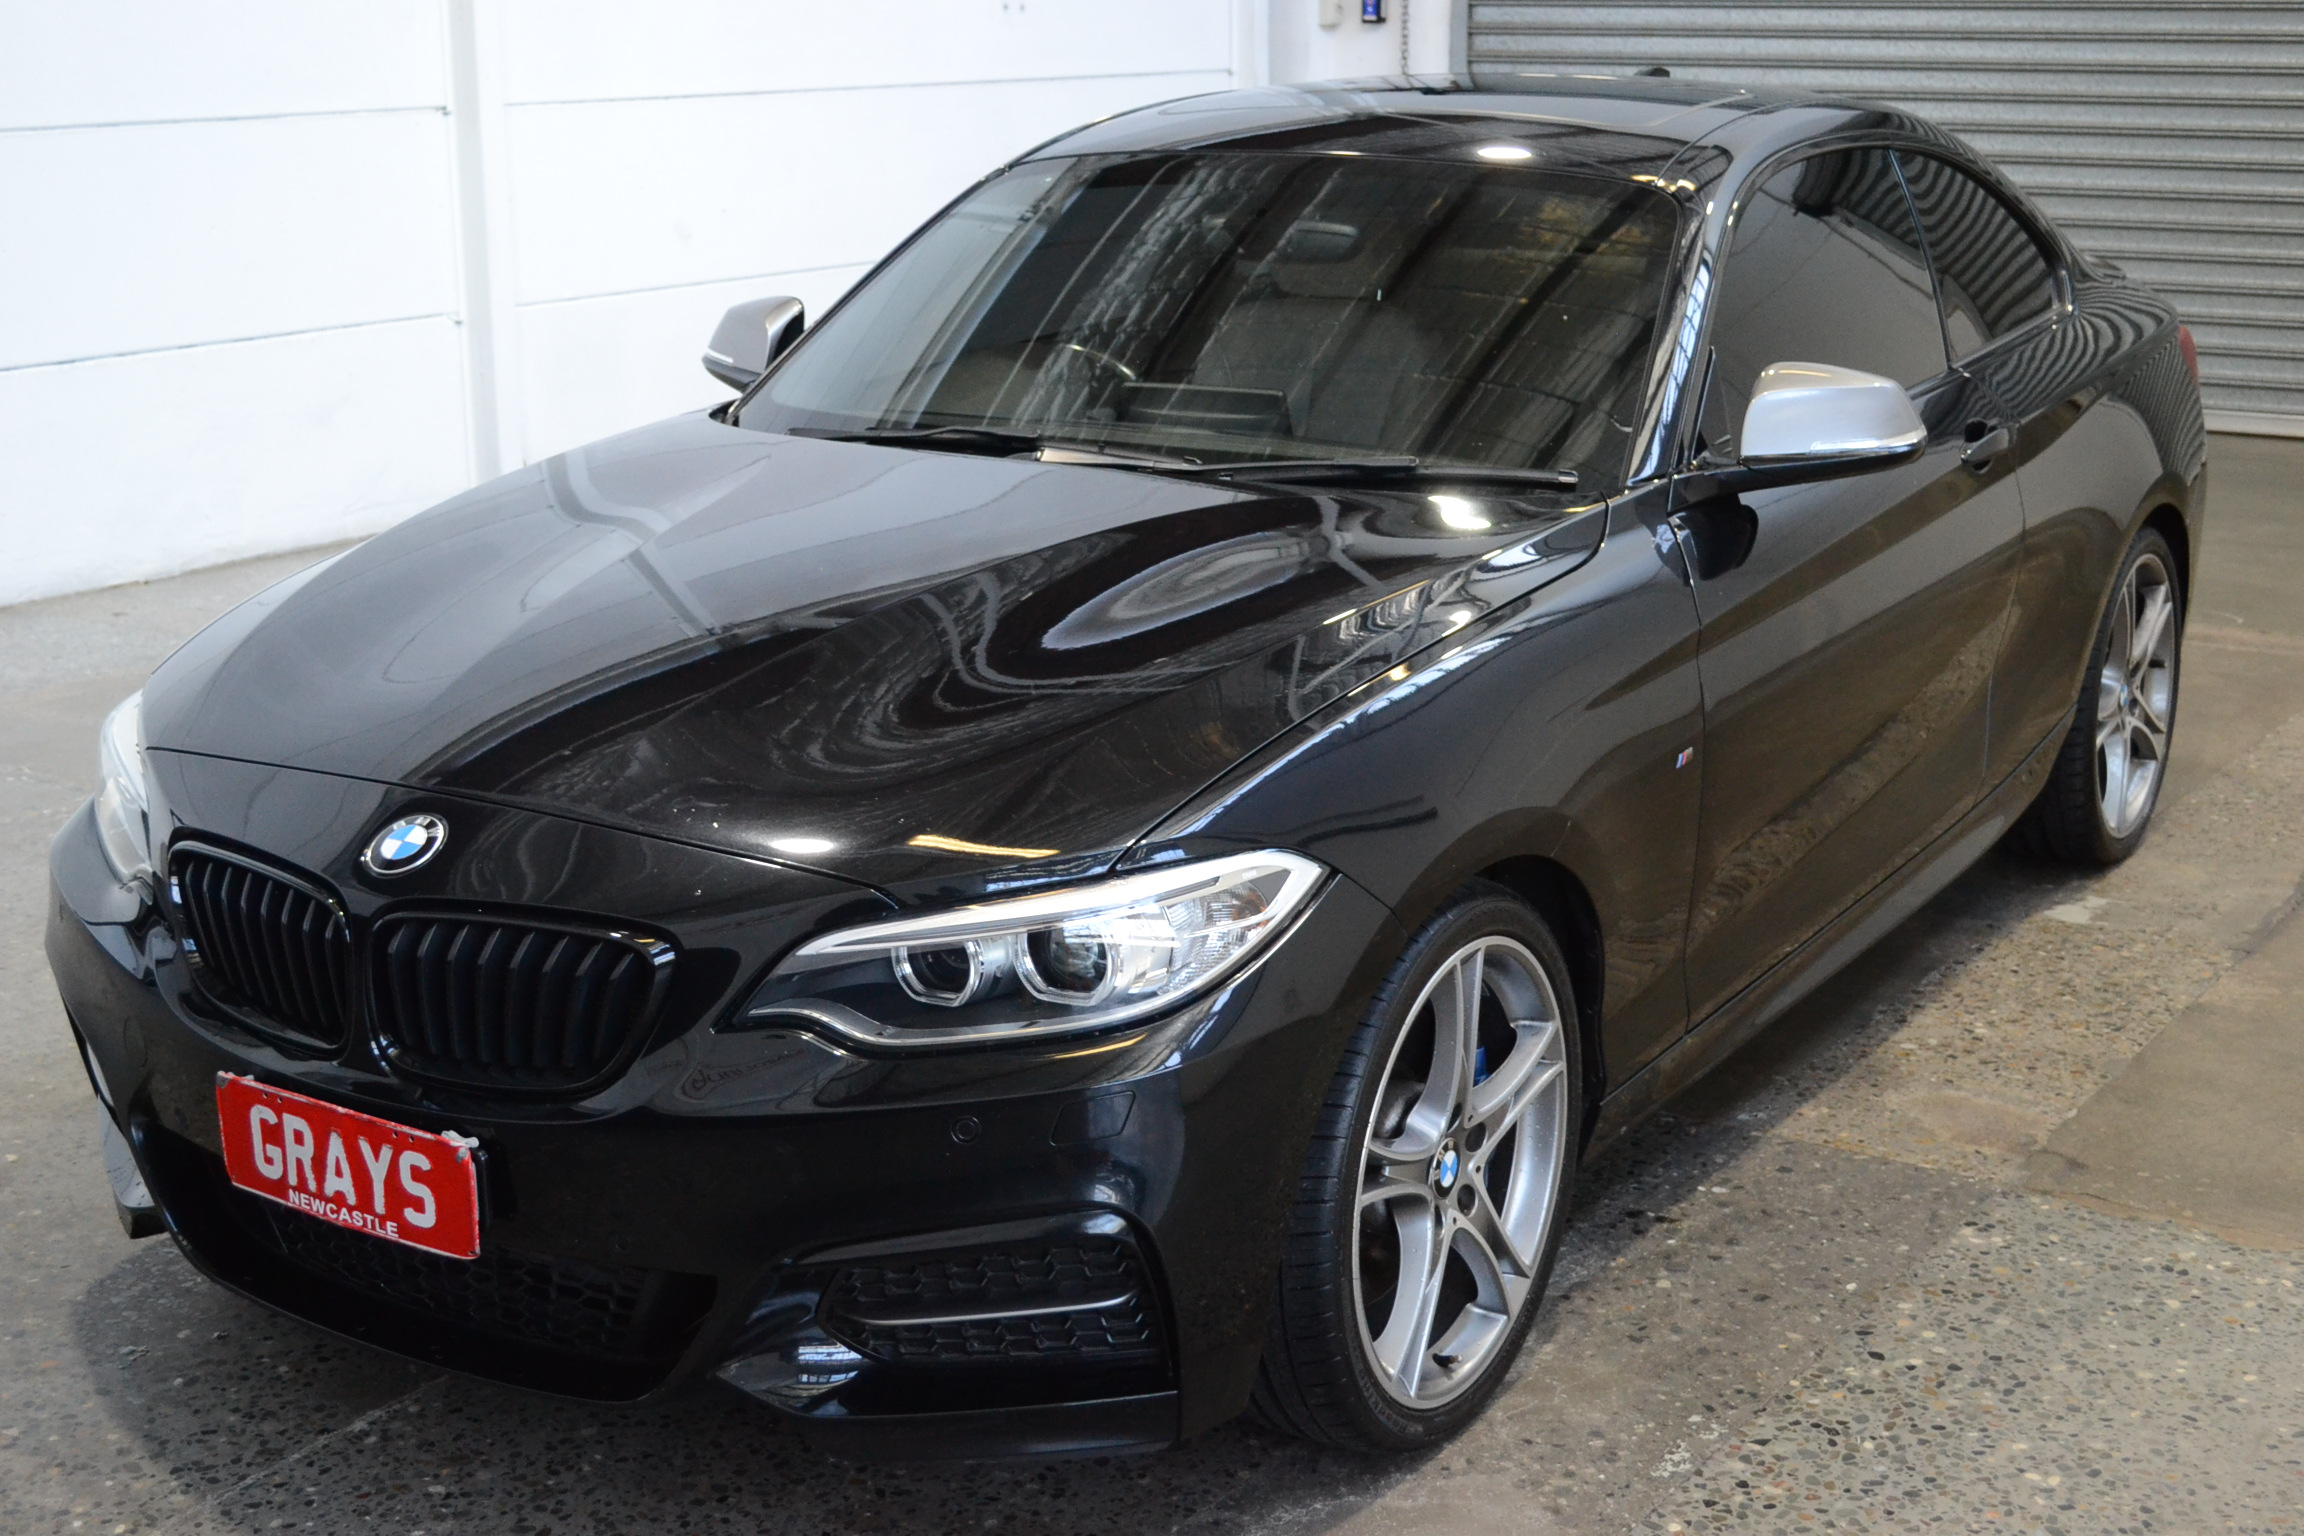 2015 BMW 2 Series M235i F22 Automatic - 8 Speed Coupe